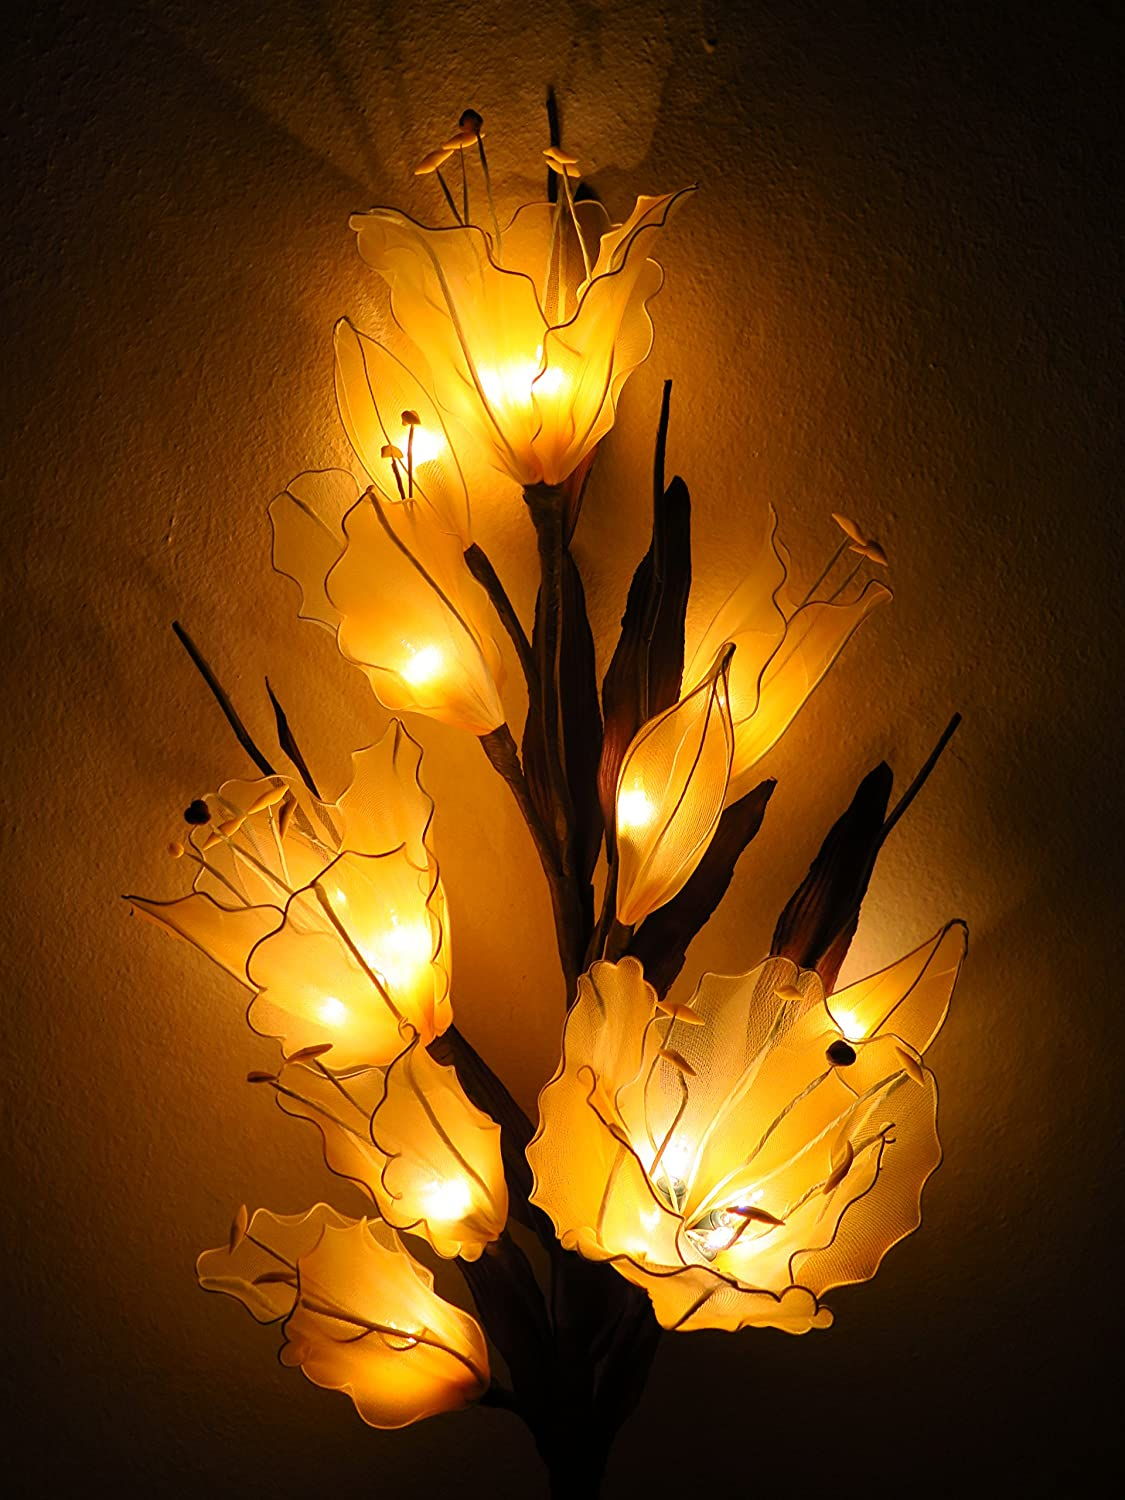 Lily Artificial Flowers Lamps Vase Floor Table Night Light Wedding Lighting Home Decor Gift Made By Nylon Paper Fabric 20 Bulbs